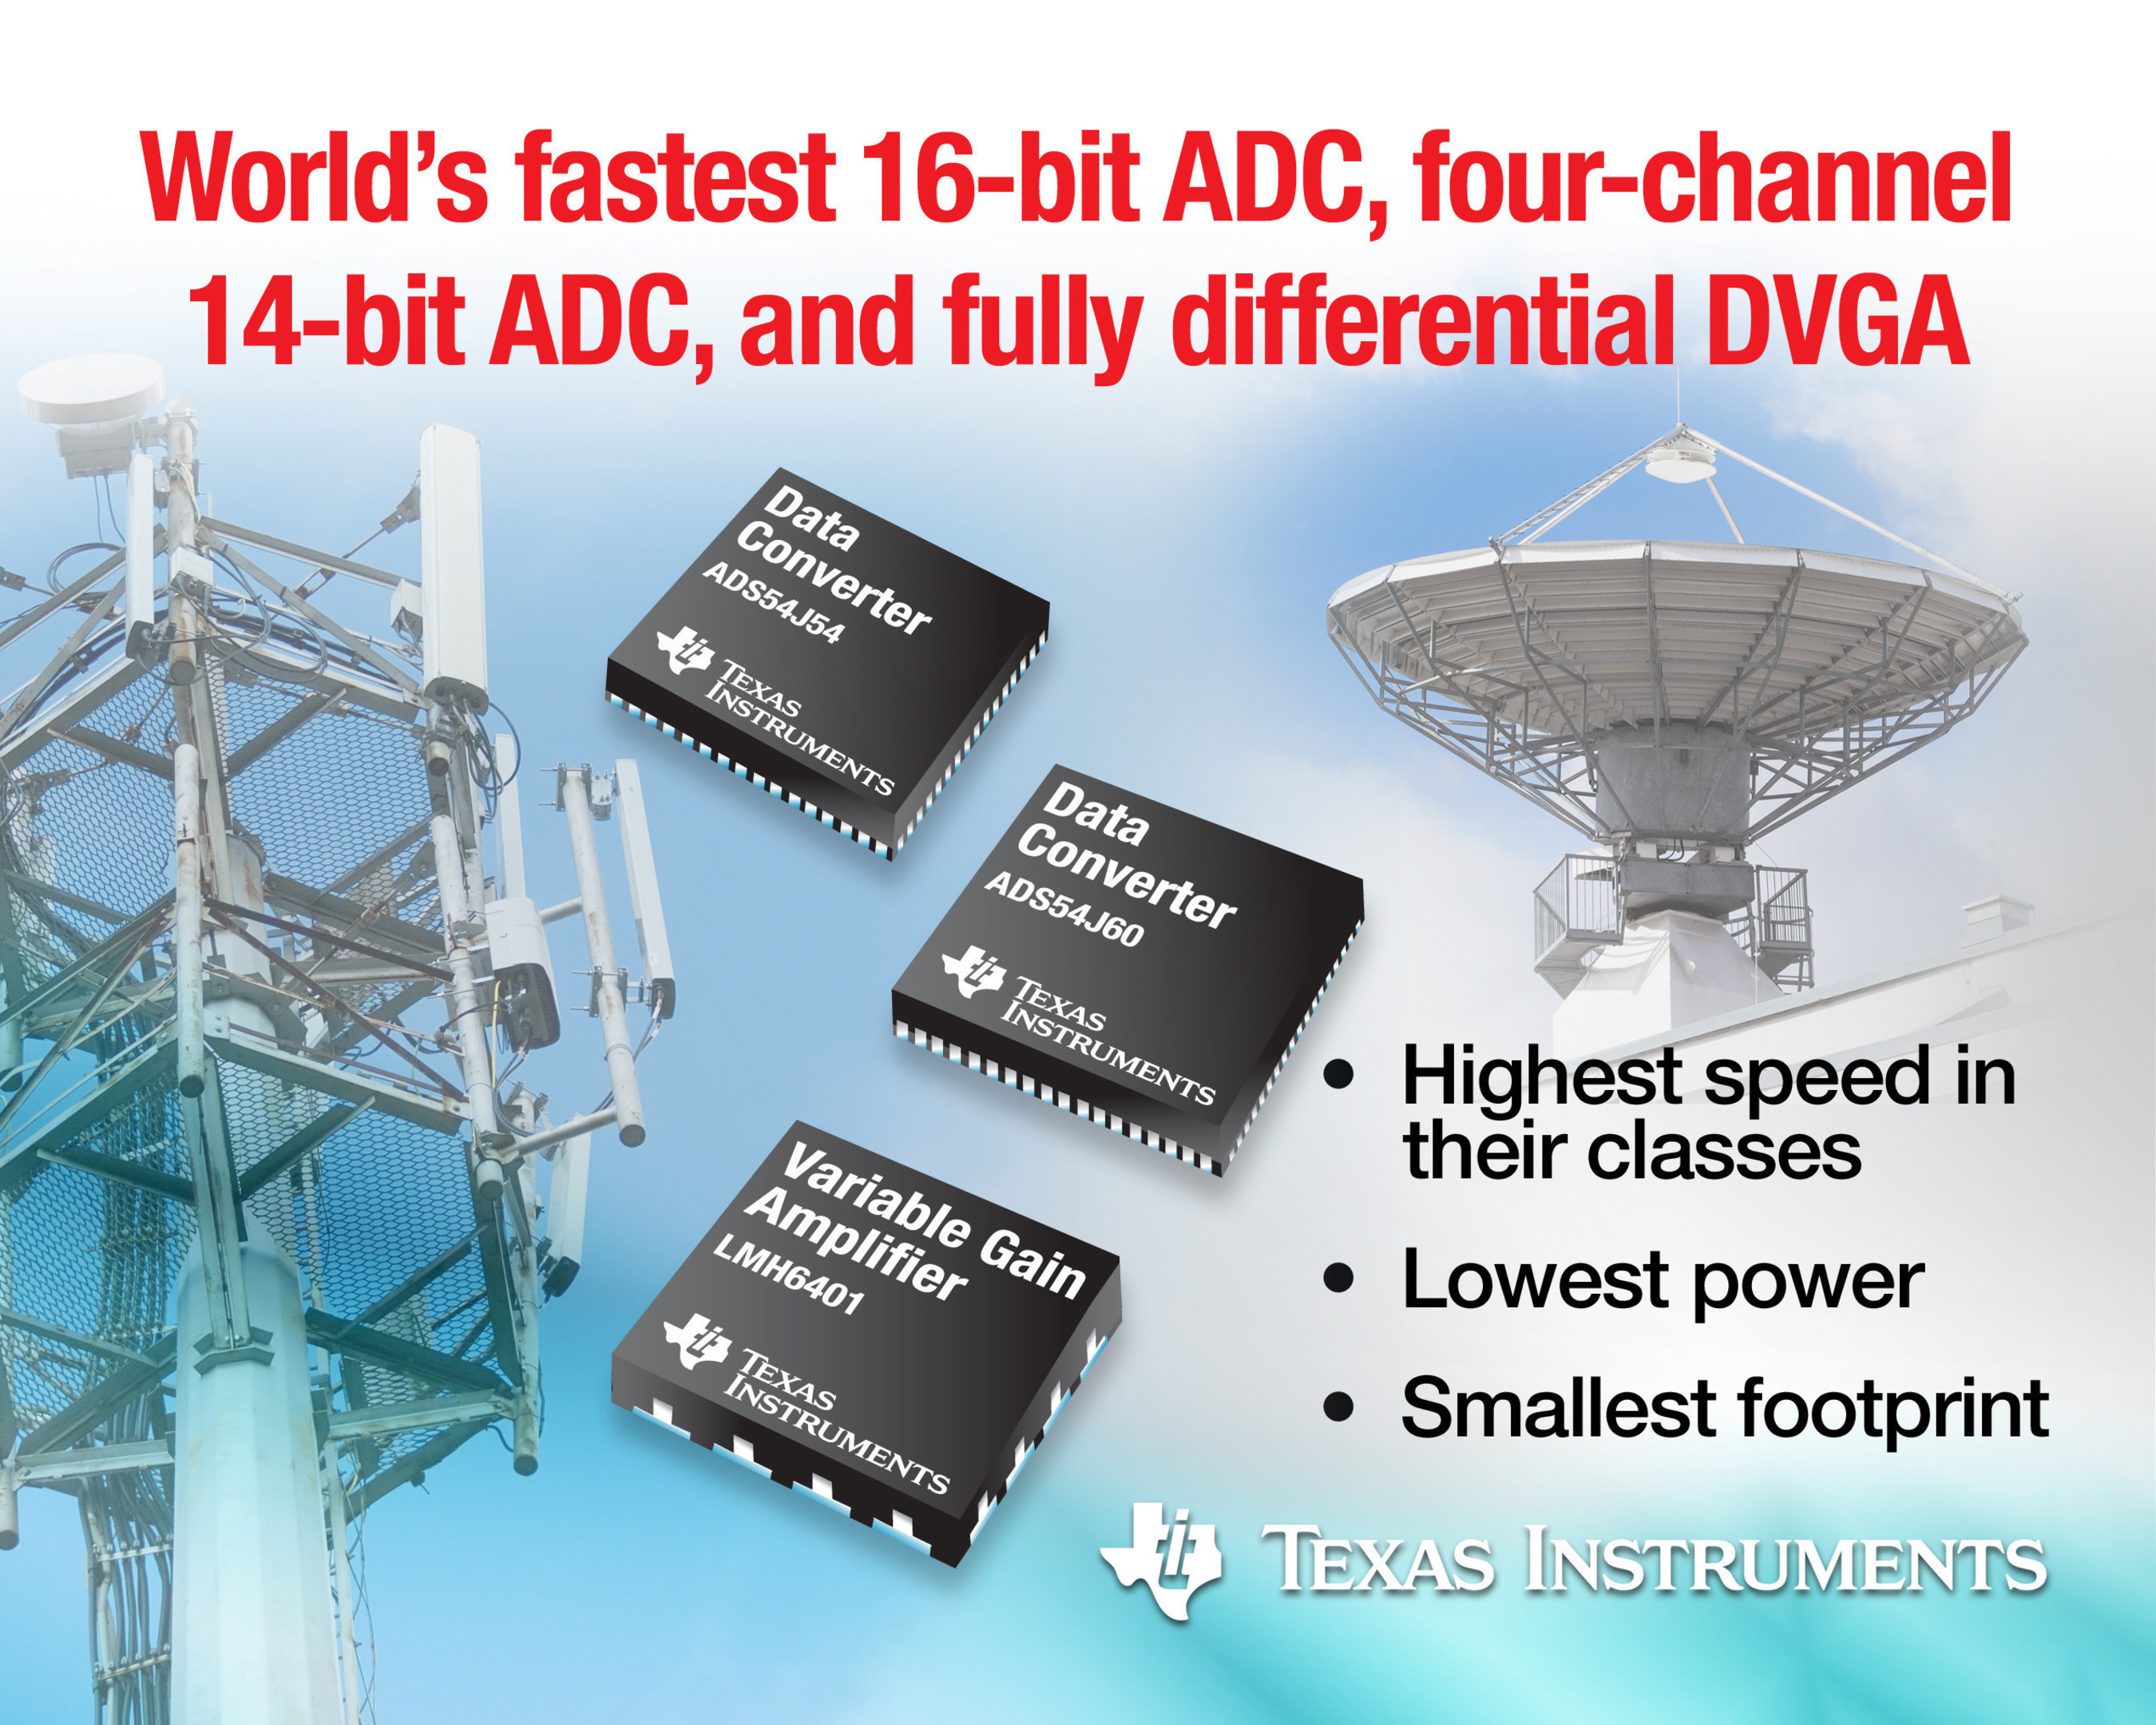 TI introduces world's fastest 16-bit ADC, four-channel 14